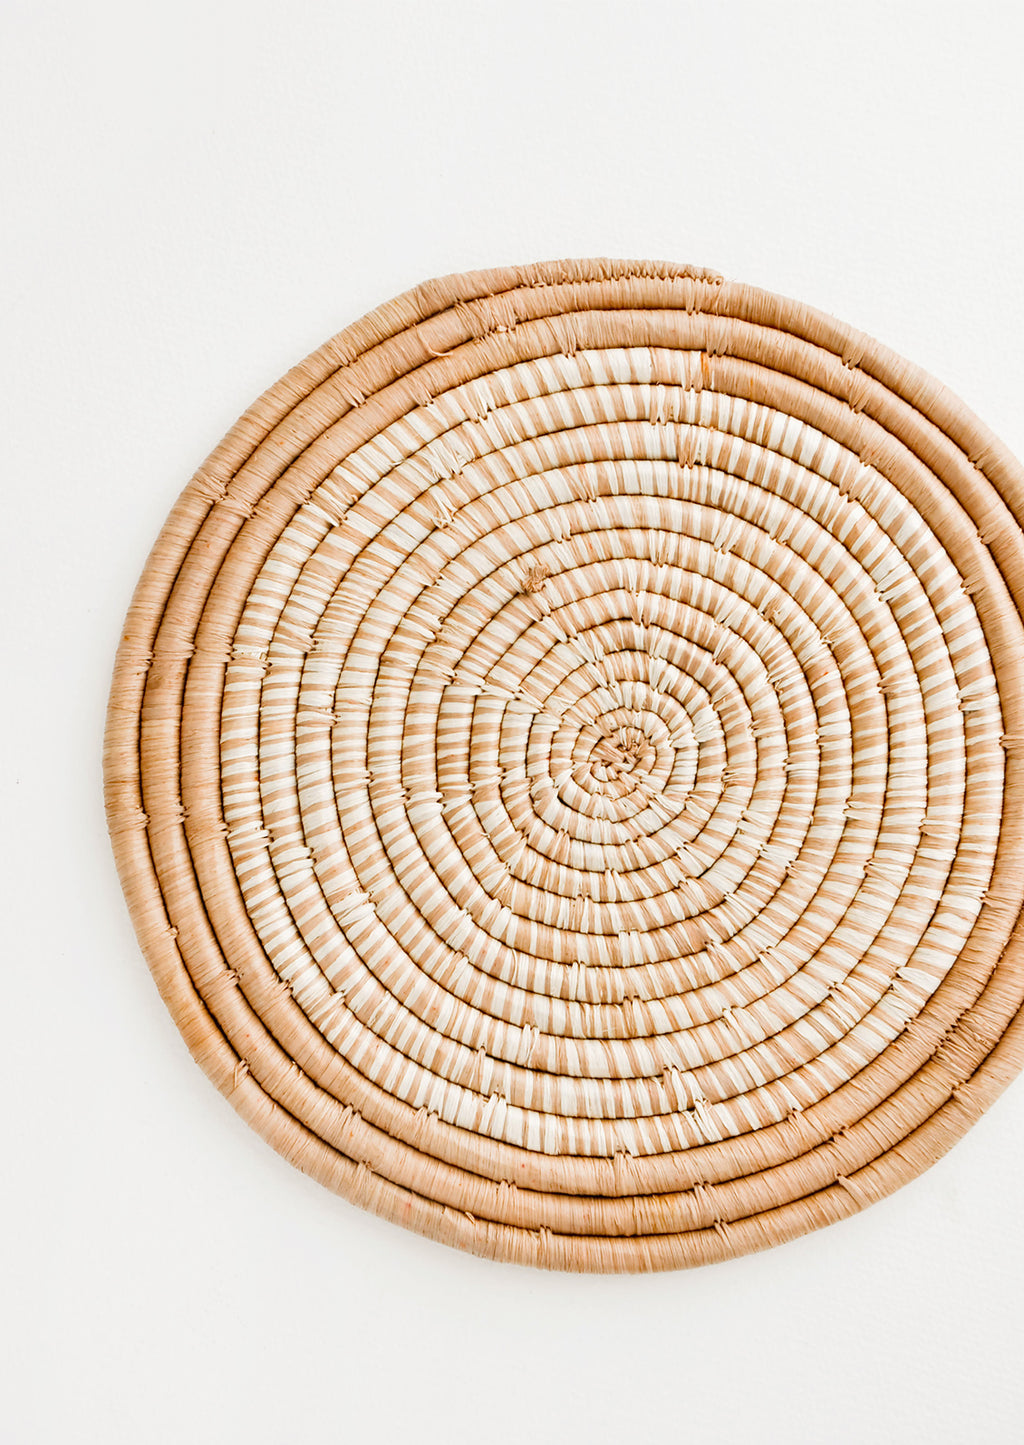 Tan: Hue Woven Raffia Trivet in Tan - LEIF